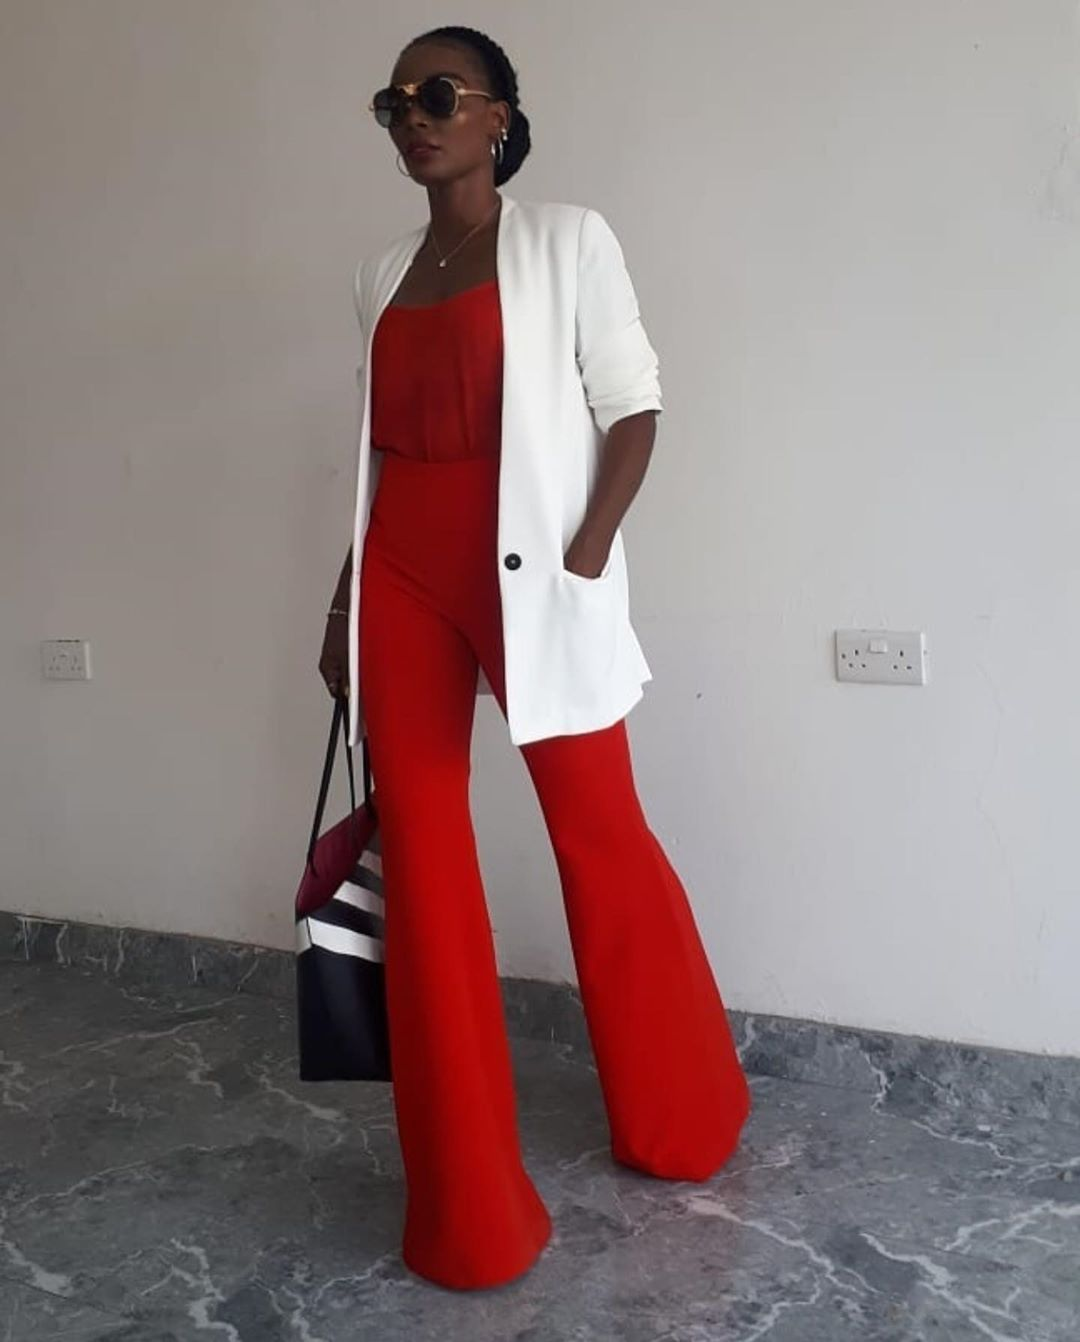 Toka Toka Lagos Is The Model Influencers Will Flock To For Basic Up to date Items